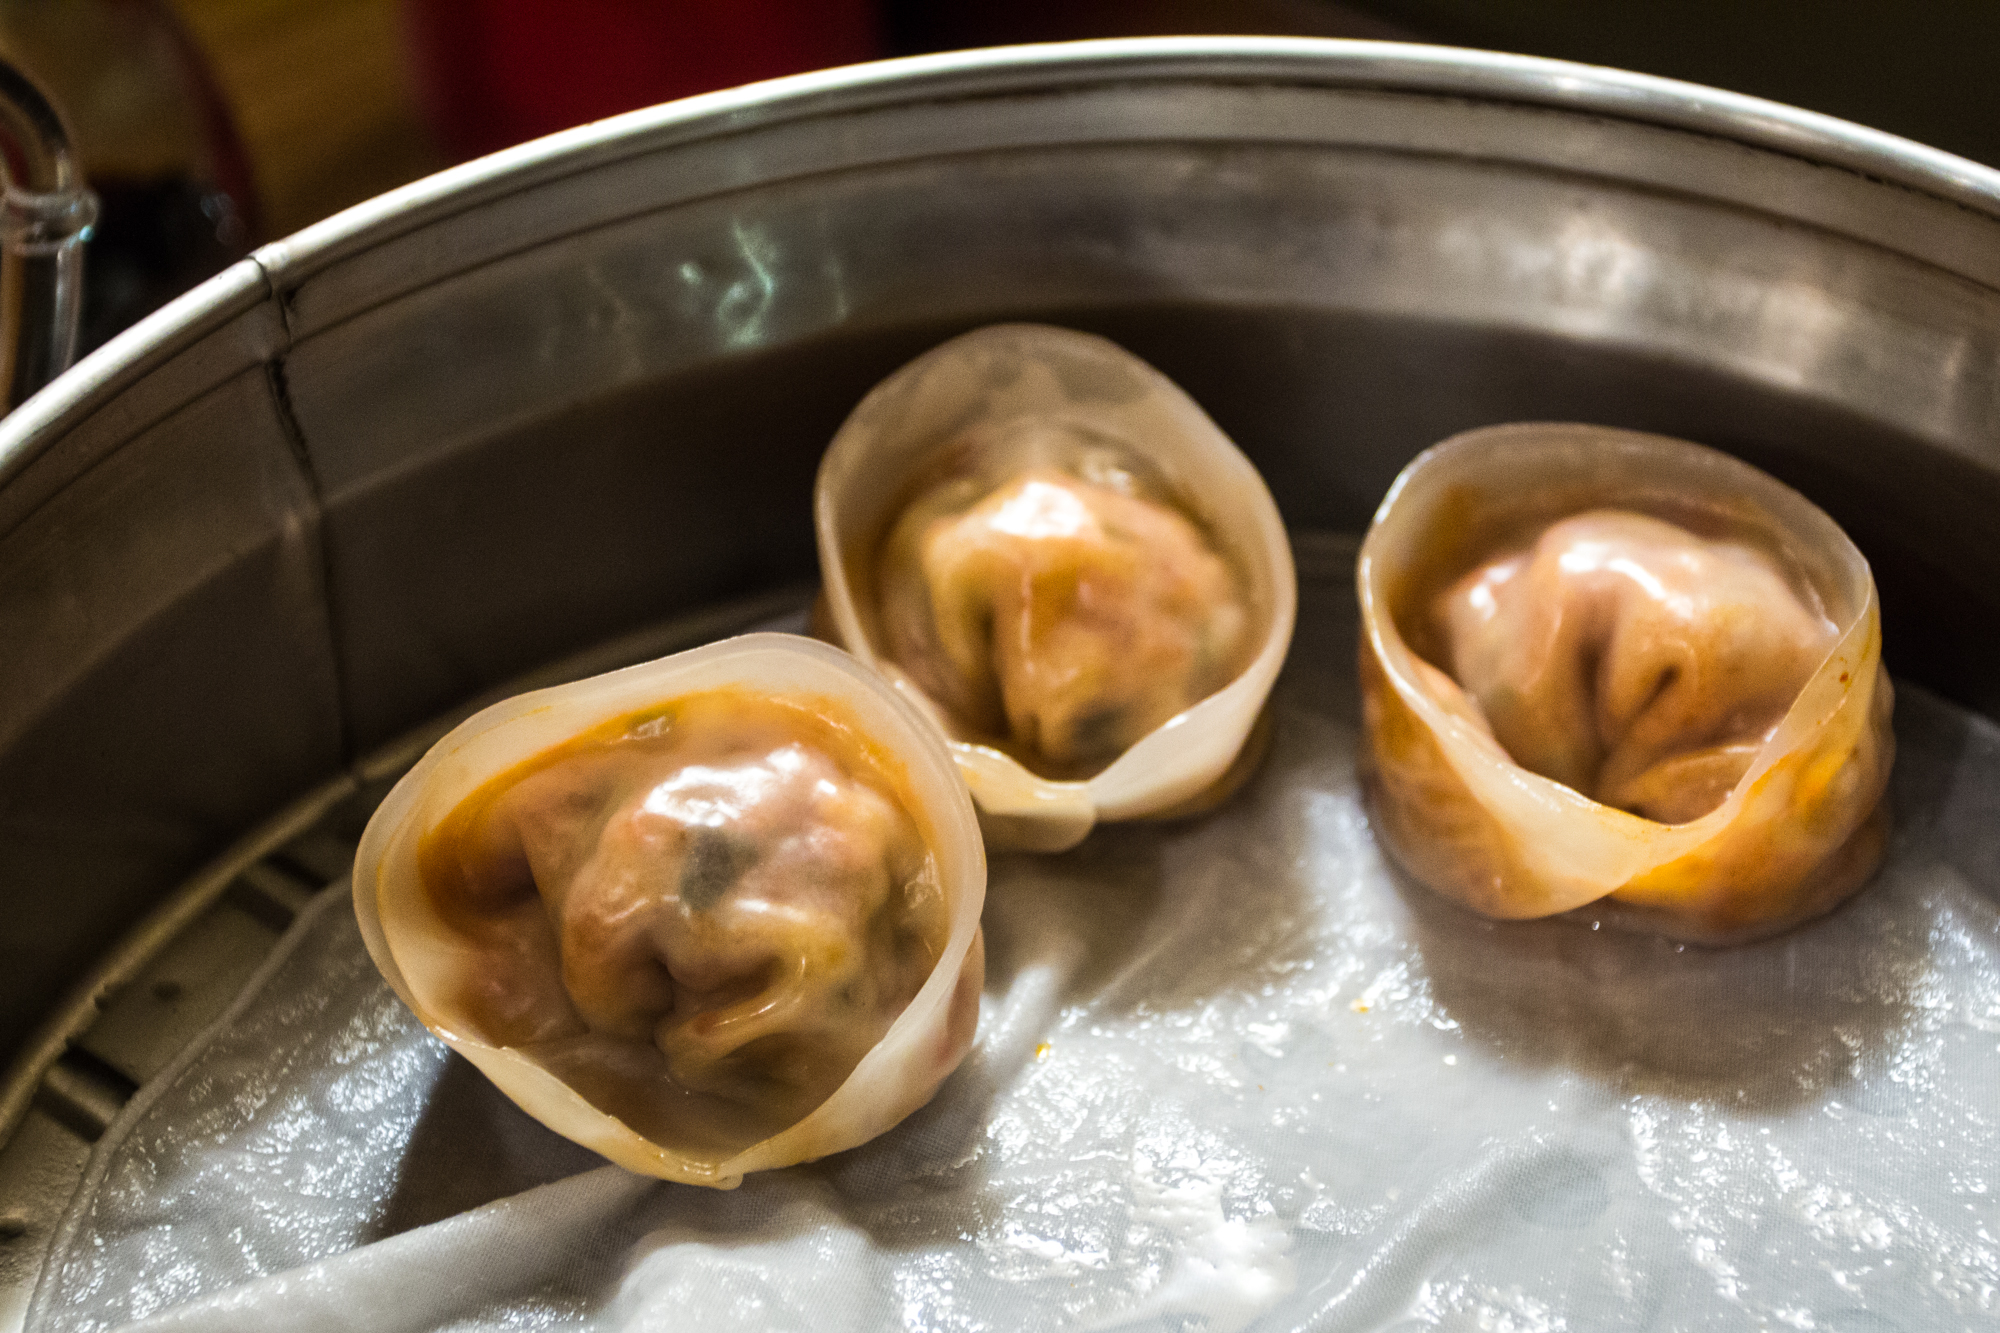 Koreatown Dumplings, NYC